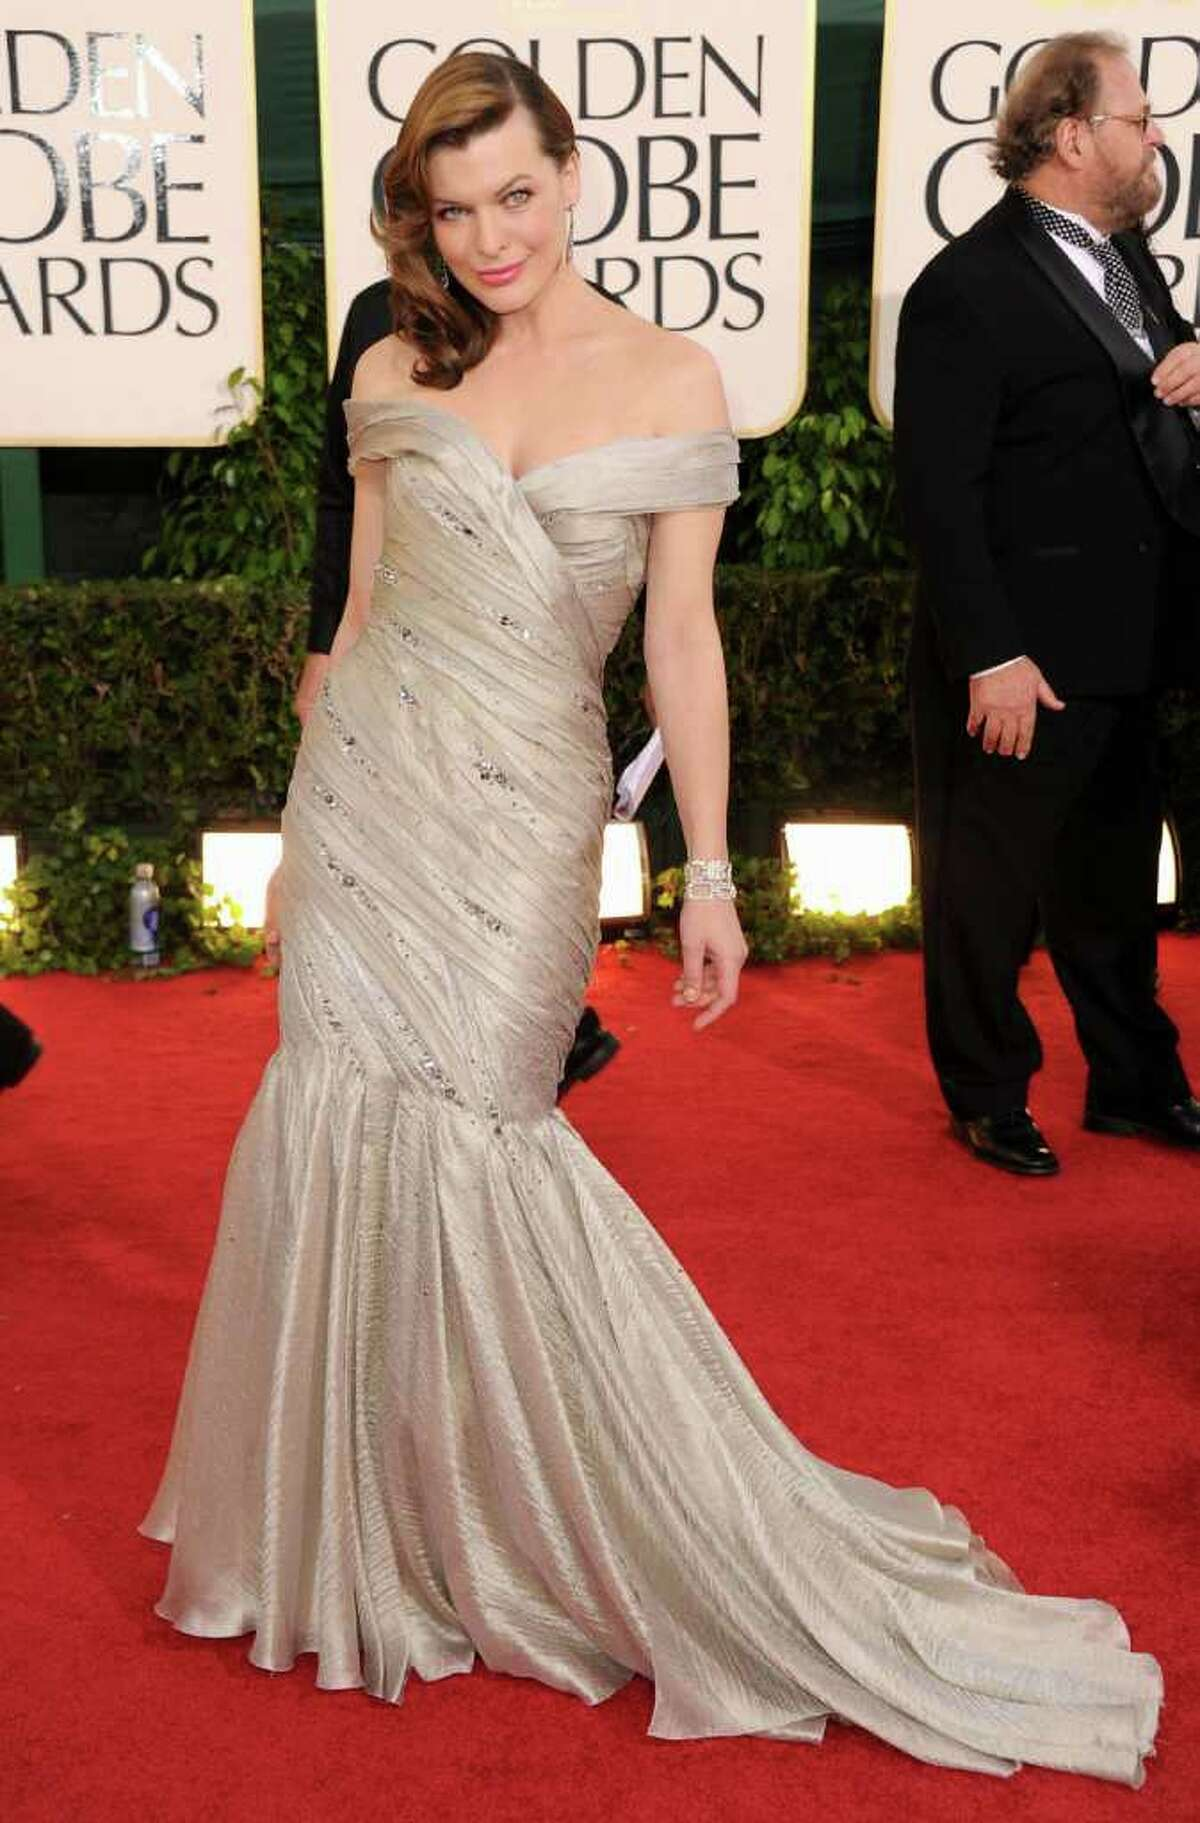 BEVERLY HILLS, CA - JANUARY 16: Actress Milla Jovovich arrives at the 68th Annual Golden Globe Awards held at The Beverly Hilton hotel on January 16, 2011 in Beverly Hills, California. (Photo by Frazer Harrison/Getty Images) *** Local Caption *** Milla Jovovich